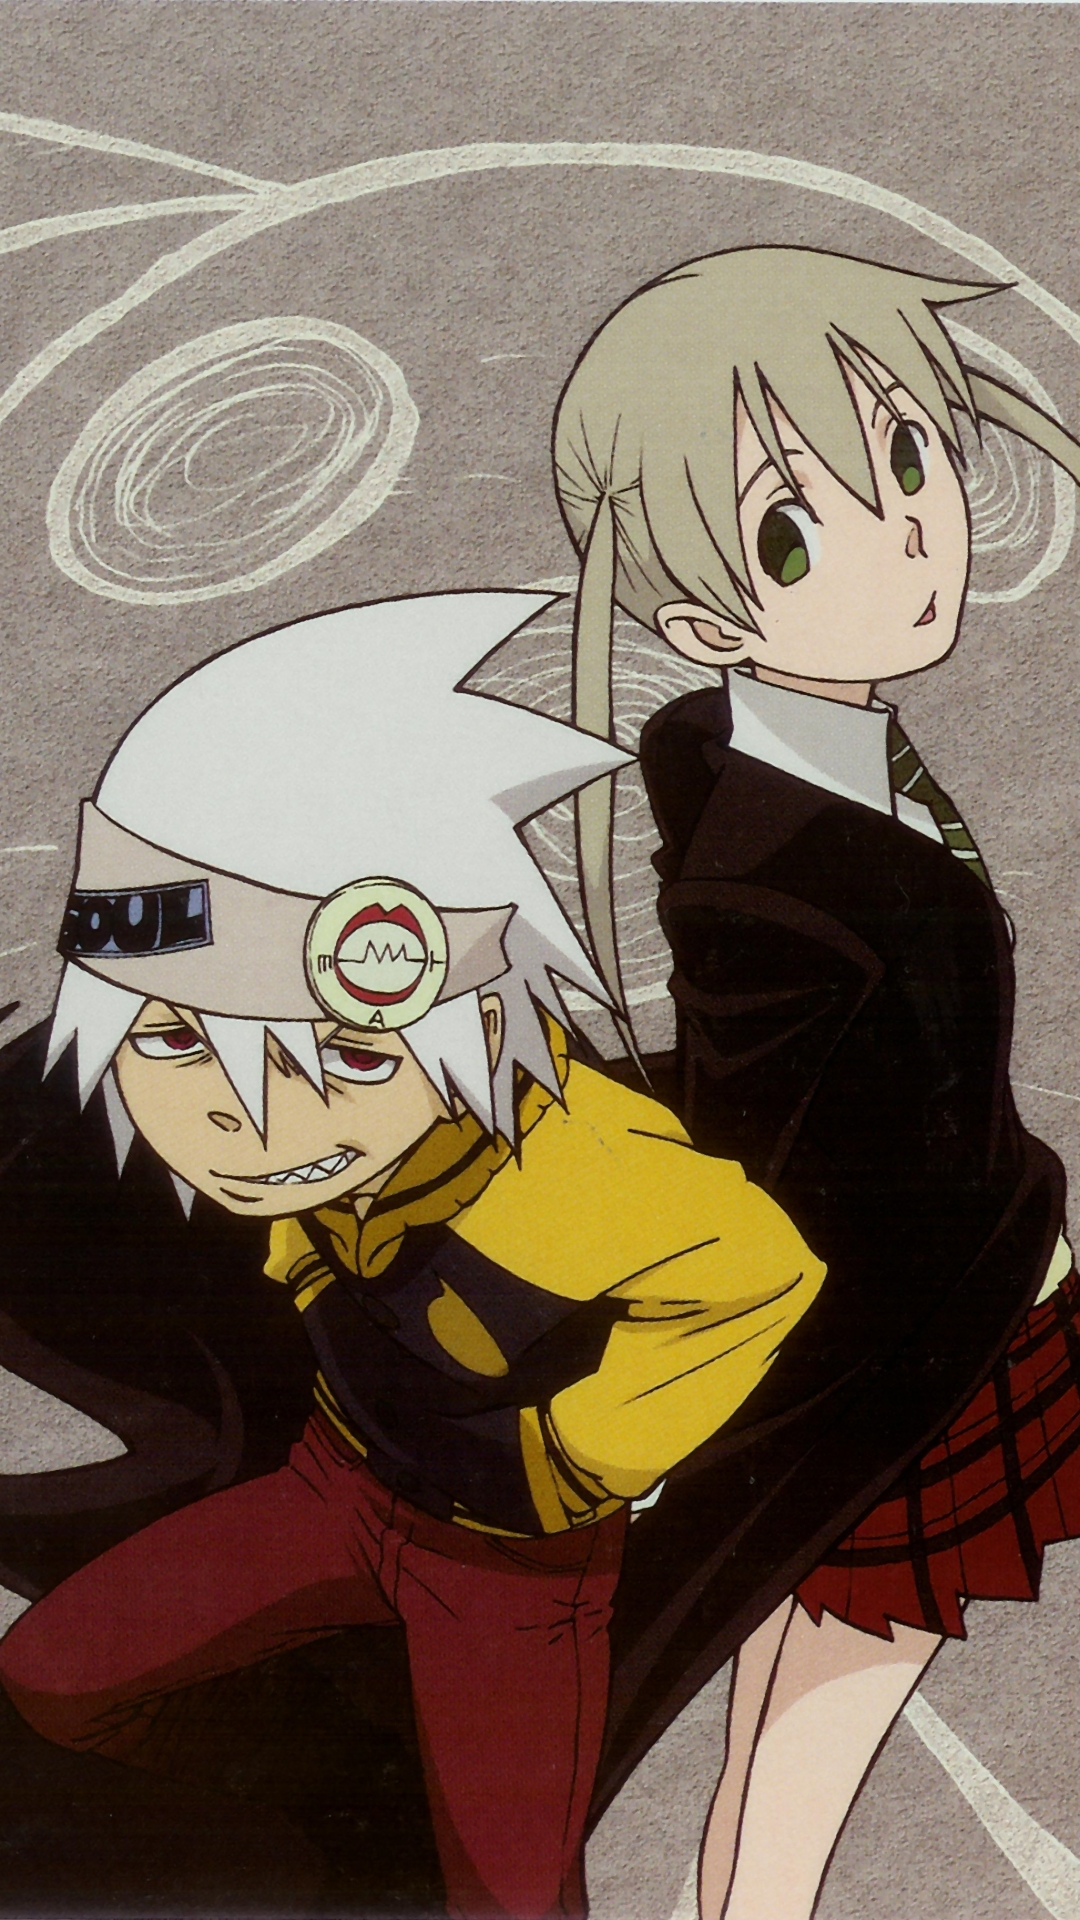 Iphone Wallpaper Fox Download Soul Eater Mobile Wallpaper Gallery